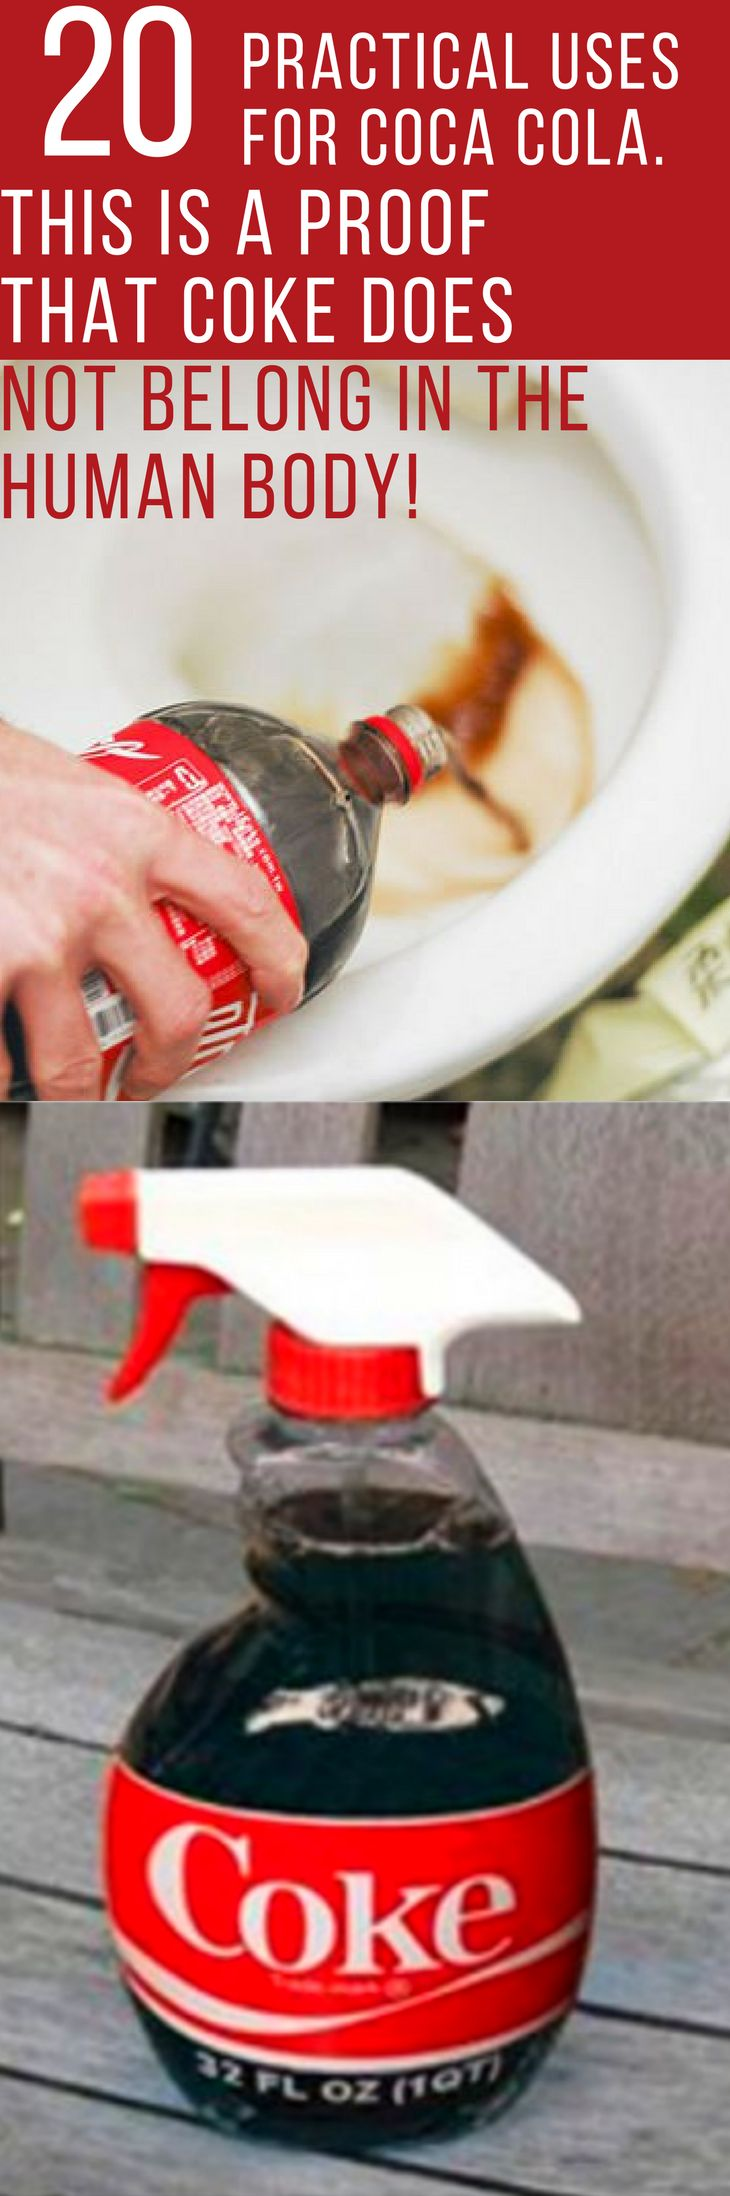 20 Practical Uses For Coca Cola. This is a Proof That Coke Does Not Belong In The Human Body!